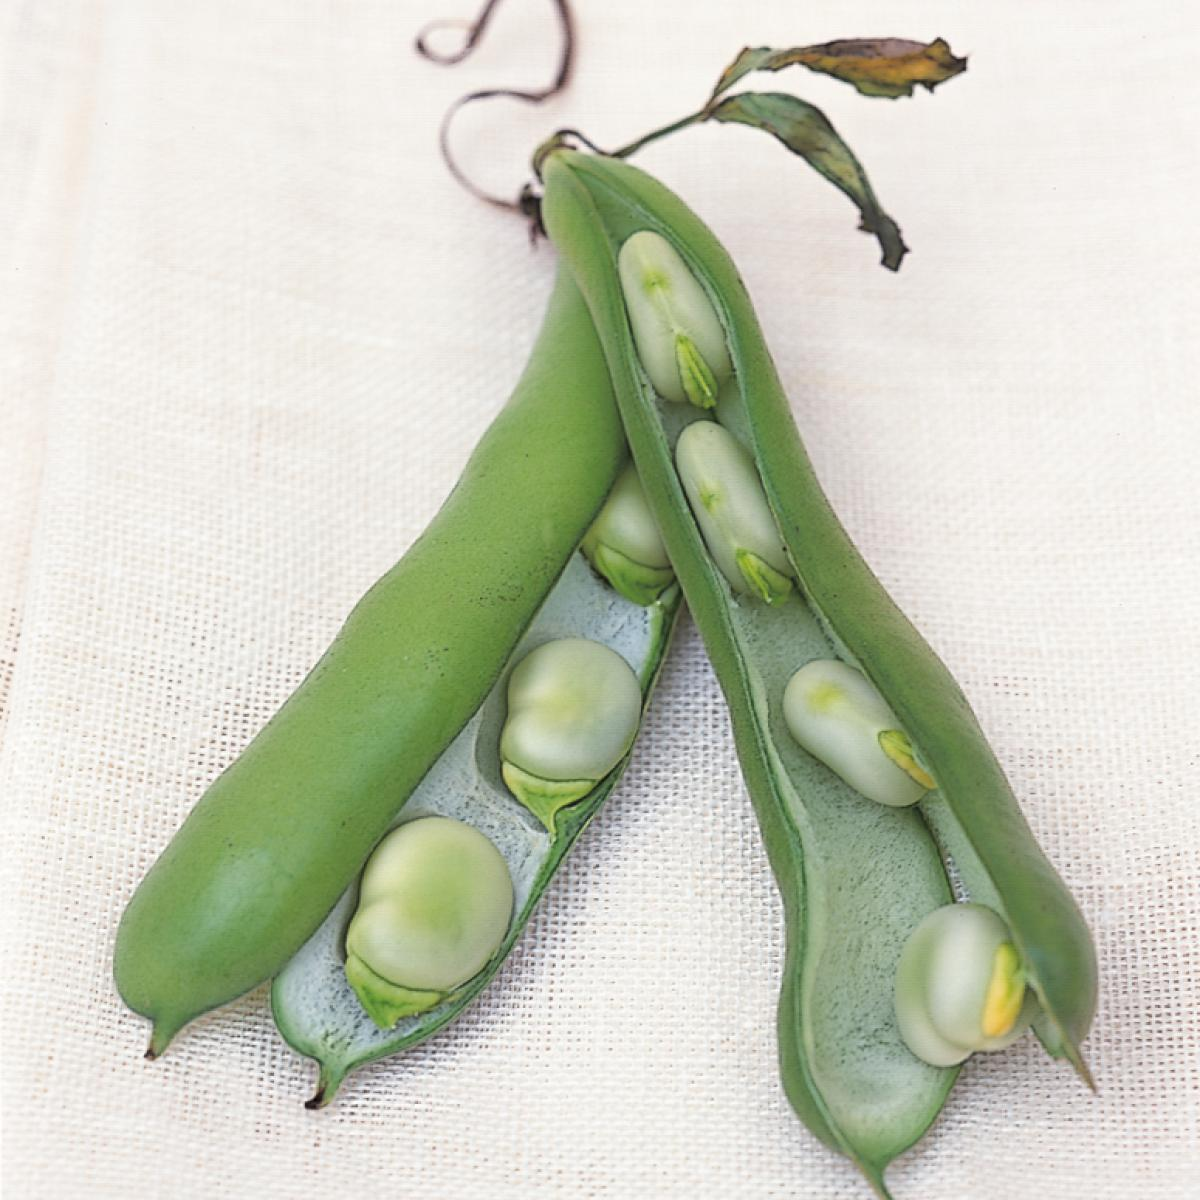 A picture of Delia's Purée of Broad Beans recipe